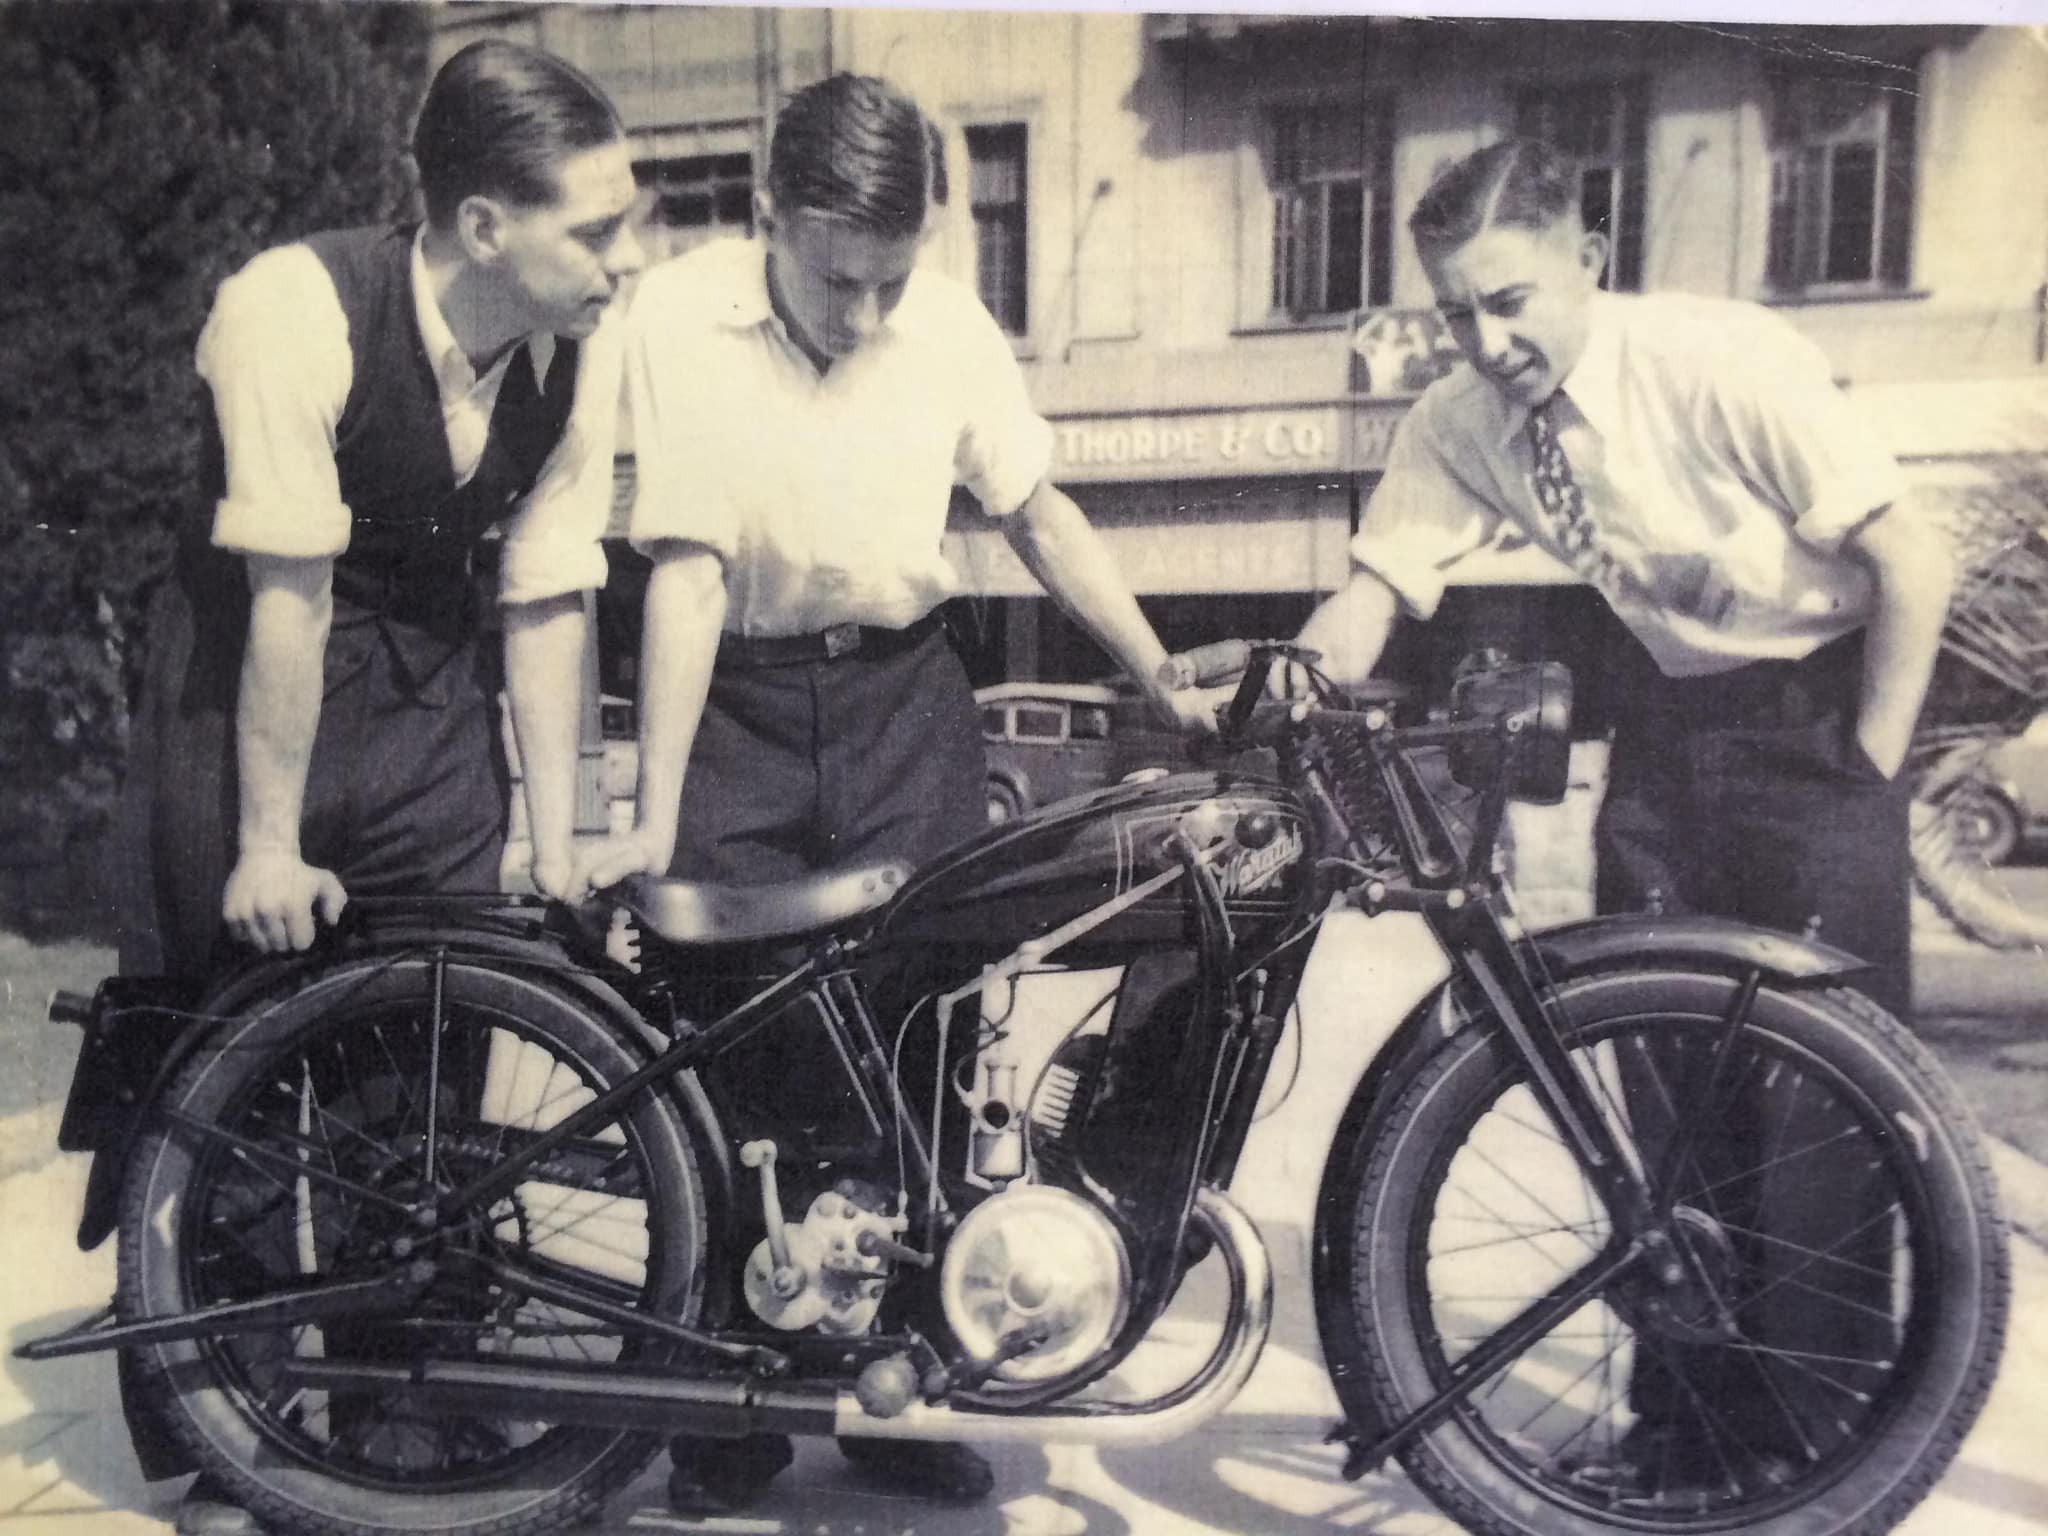 Waratah Motorcycles employees and a new bike in Sydney, circa 1945. Photograph: Waratah Motorcycles